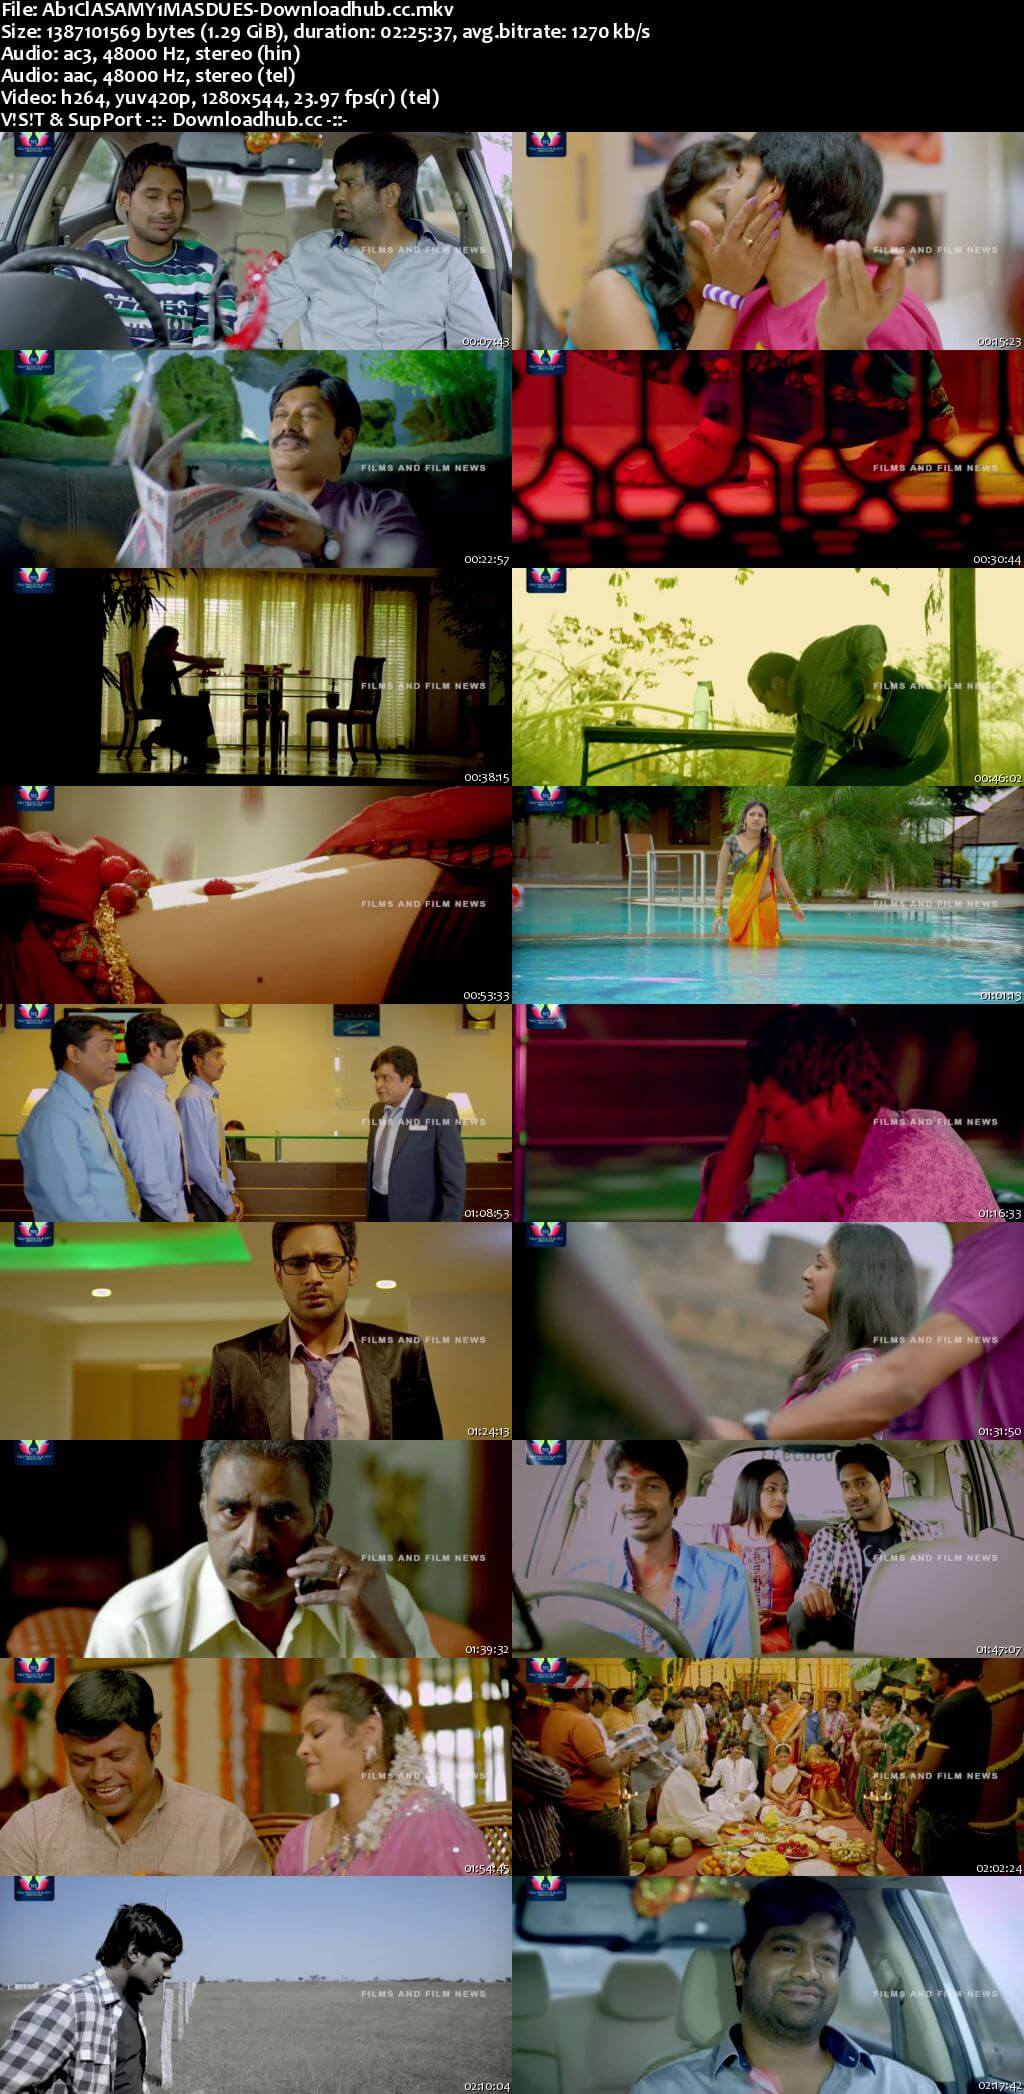 Abbai Class Ammayi Mass 2013 Dual Audio 720p UNCUT HDRip [Hindi - Telugu]